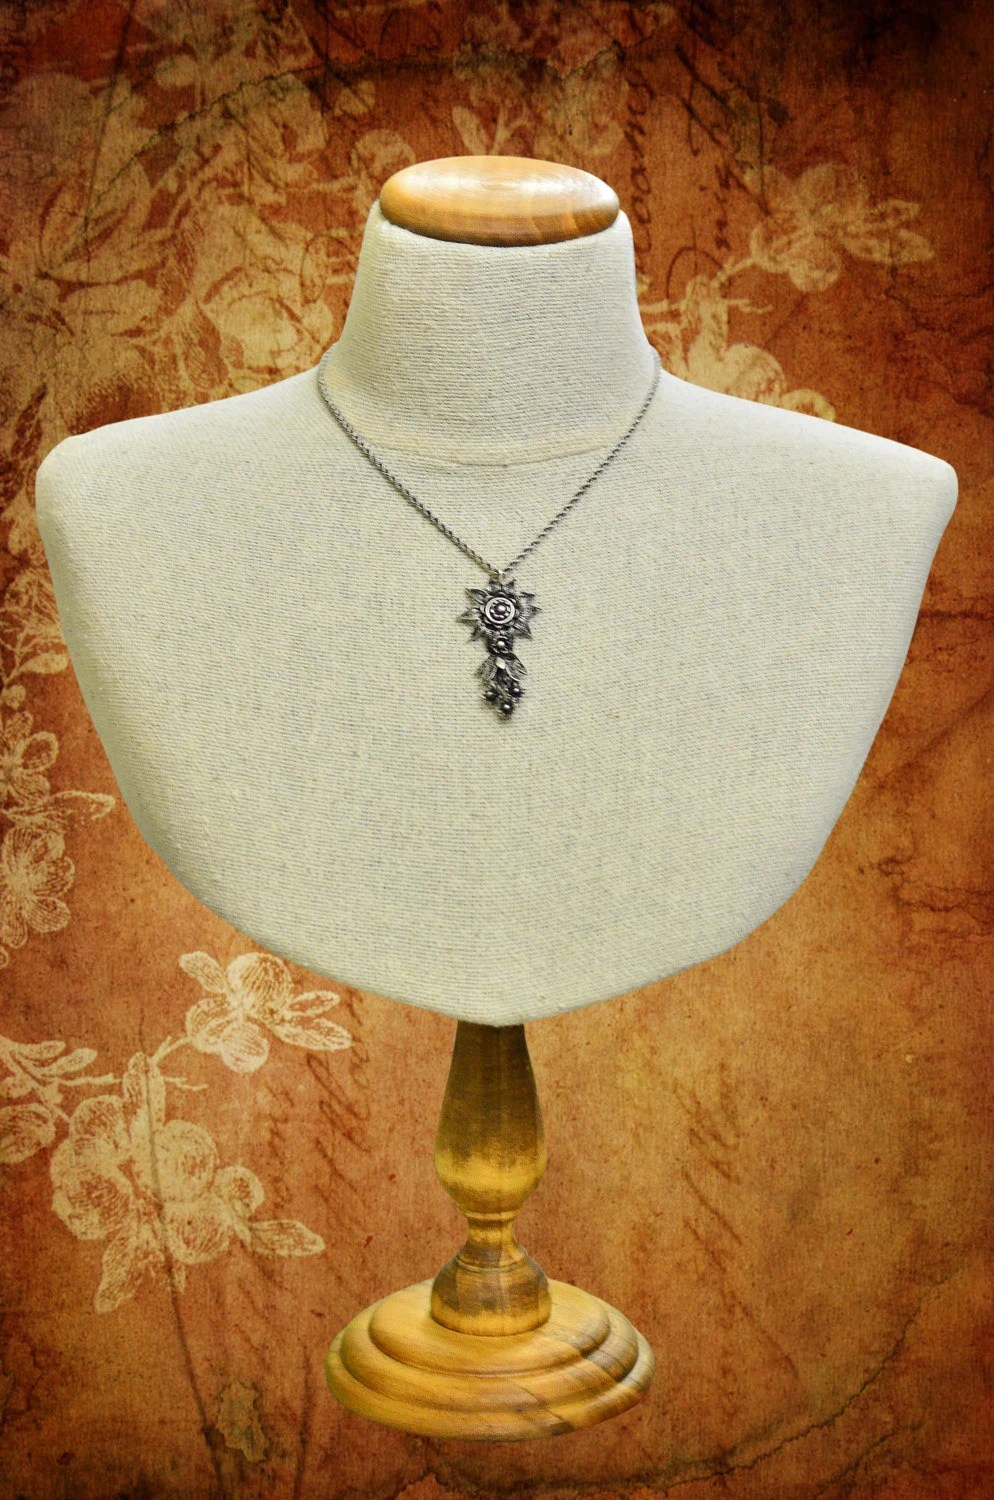 Mannequin Jewellery Holders : mannequin, jewellery, holders, Mannequin, Display, Necklace, Holder, Jewelry, Stand